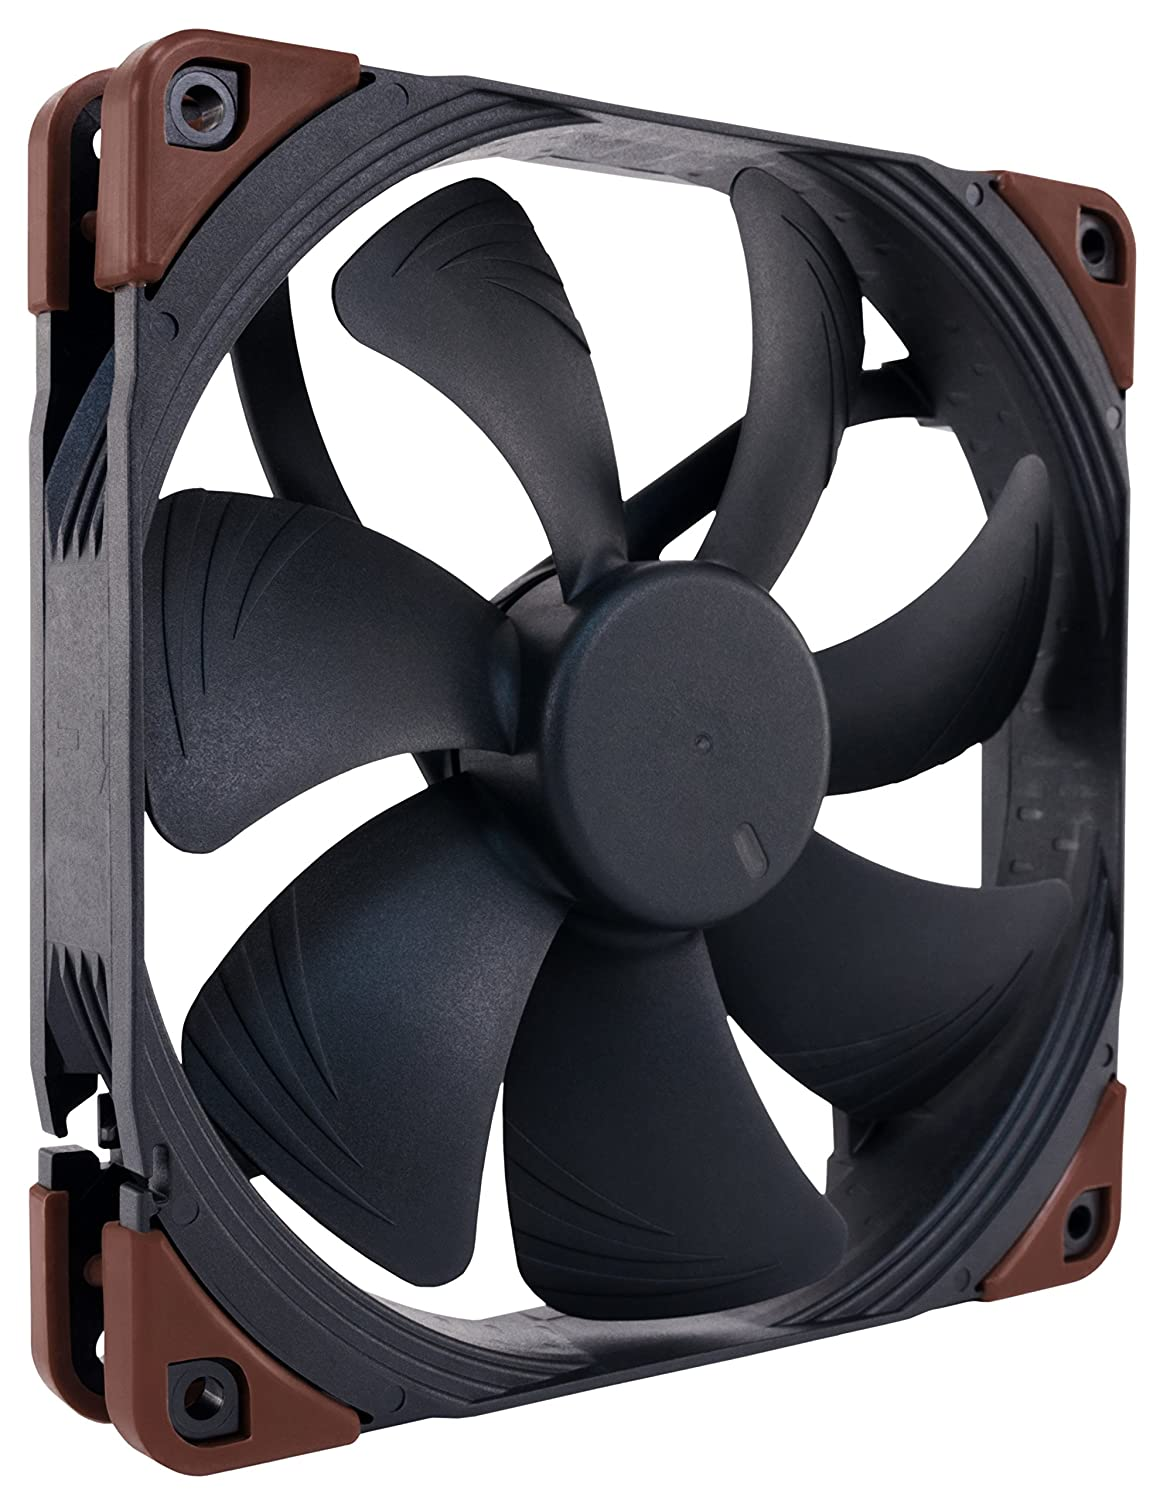 Noctua NF-A14 iPPC-24V-3000 Q100 IP67 PWM, Heavy Duty Cooling Fan, 4-Pin, 3000 RPM, 24V Version (140mm, Black)